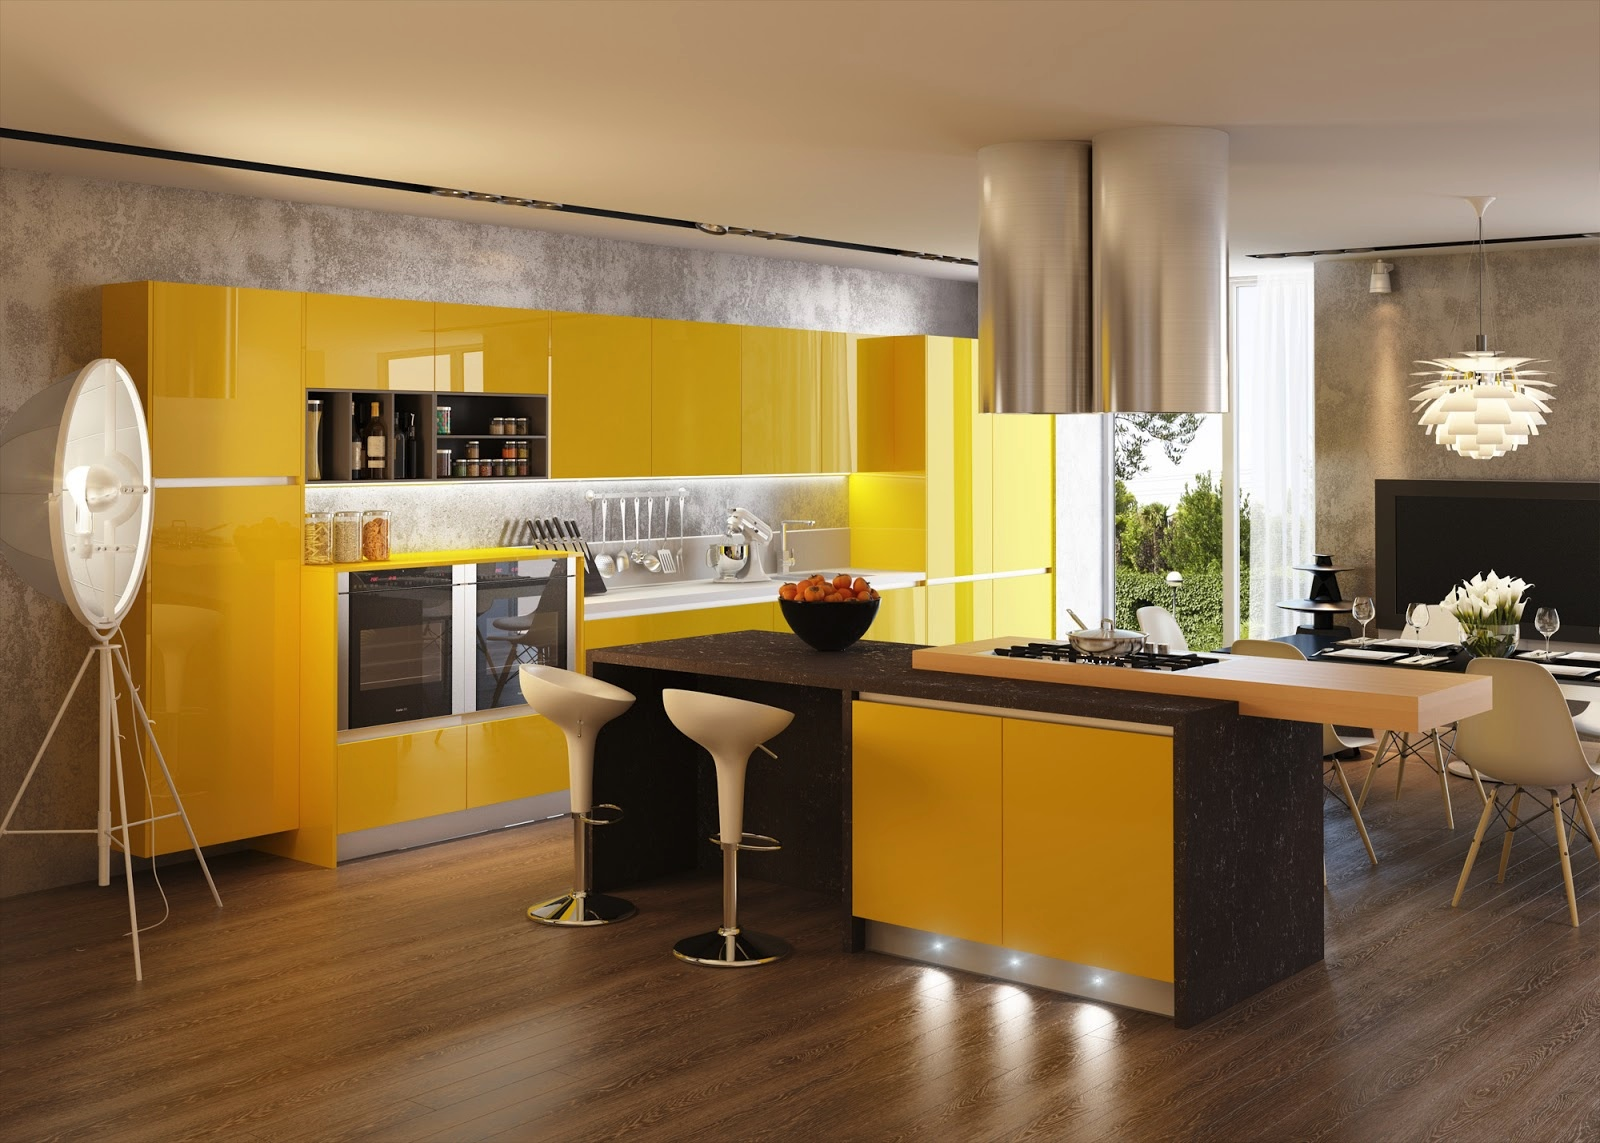 Kitchens with contrast Kitchen design yellow and white